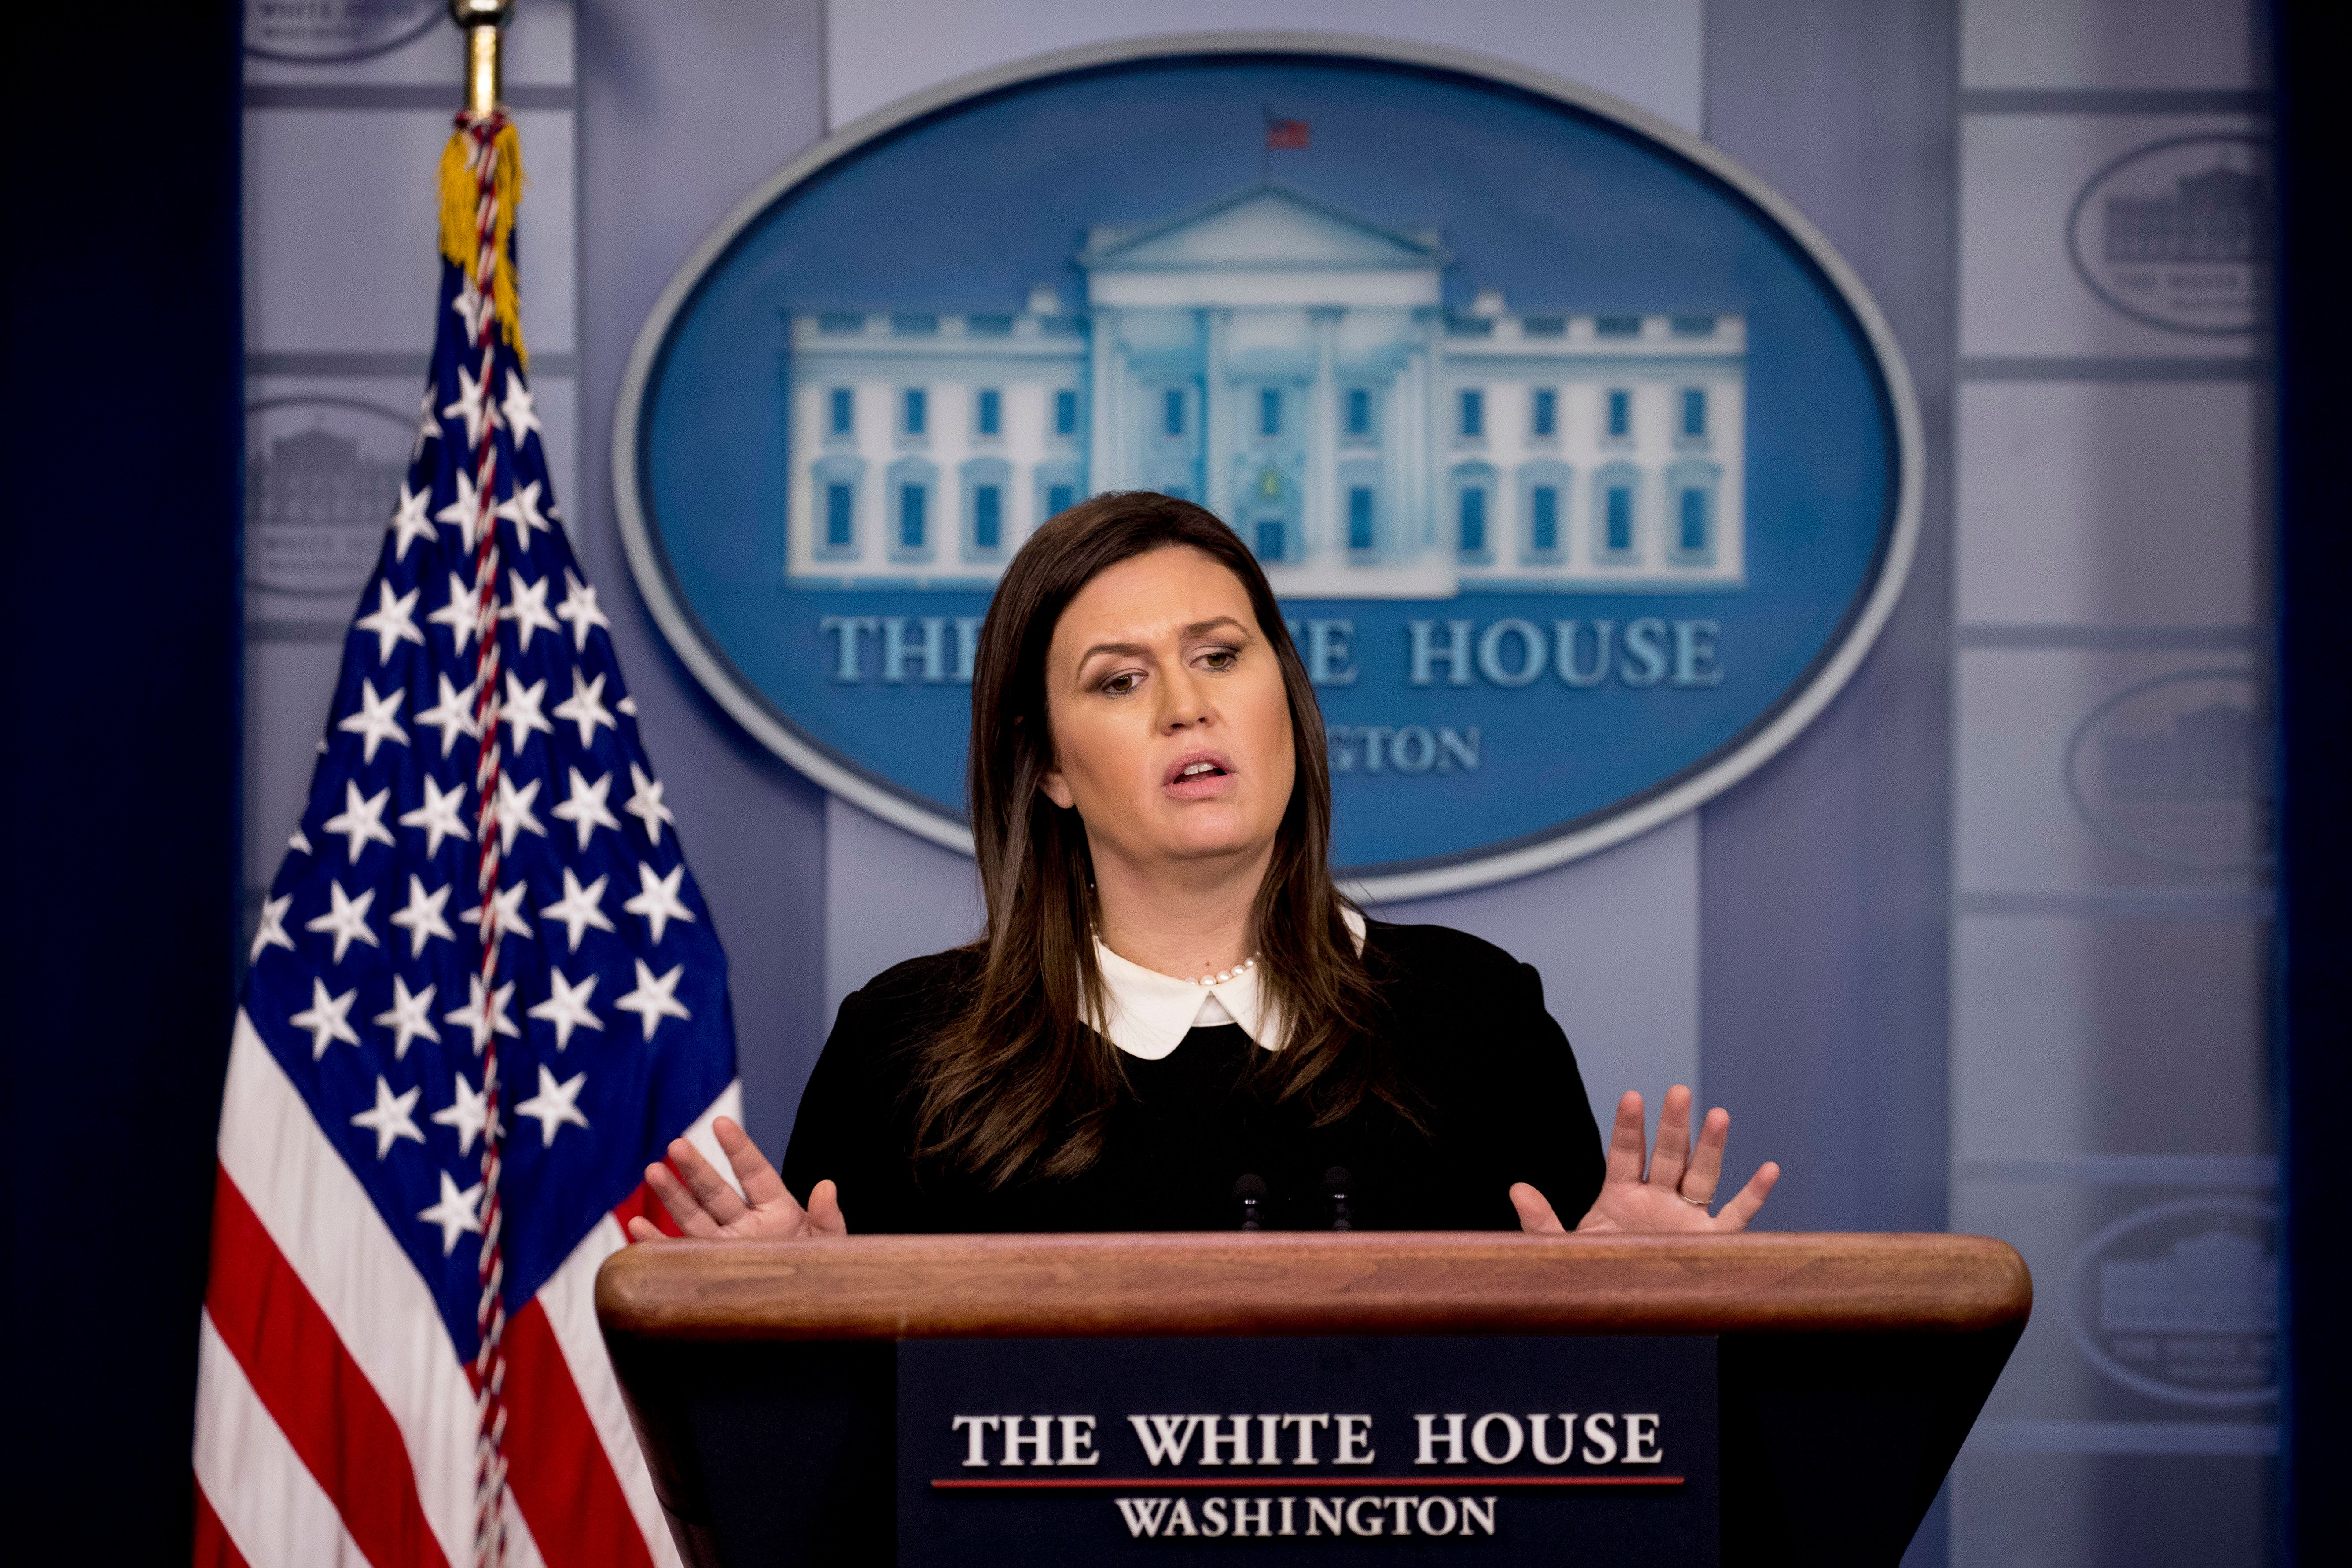 White House press secretary Sarah Huckabee Sanders calls on a reporter during the daily press briefing at the White House, Tuesday, Dec. 18, 2018, in Washington. Sanders discussed the delayed sentencing for former national security adviser Michael Flynn and other topics. (AP Photo/Andrew Harnik)